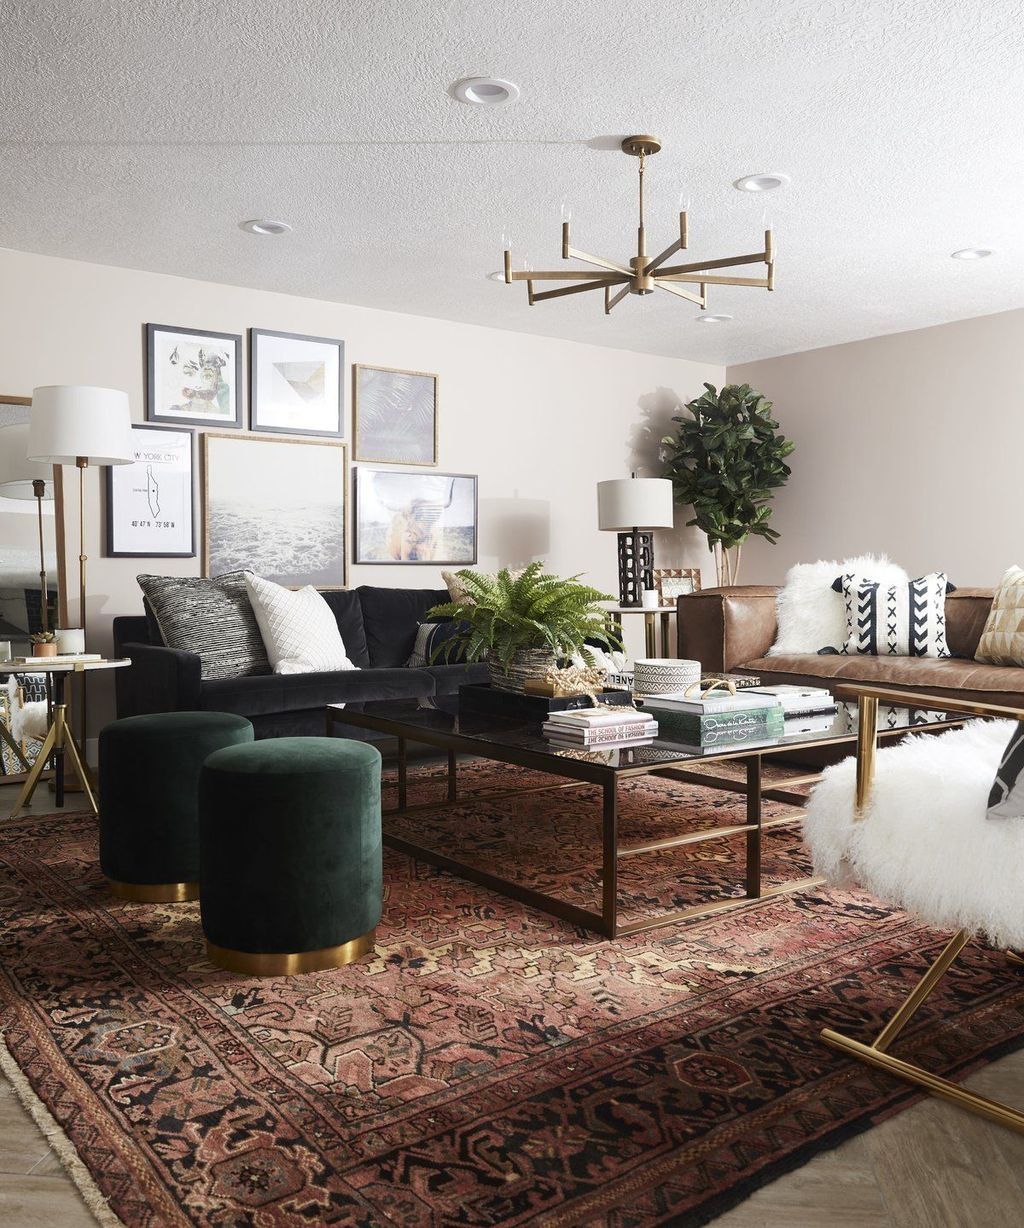 Awesome Modern Rustic Living Room Decor Ideas 14